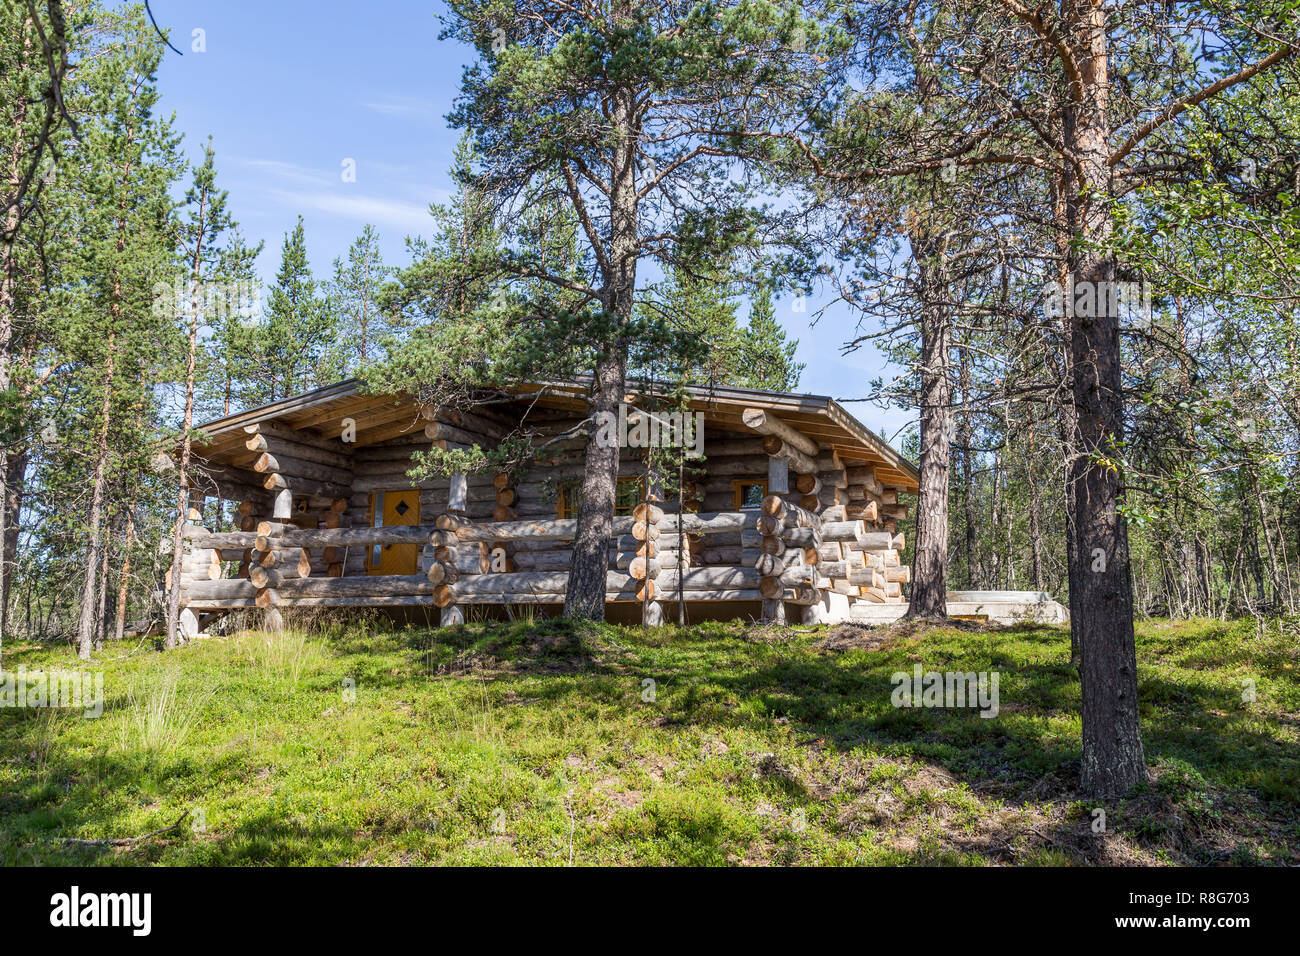 Finnish wooden loghouse in the forest of Lapland - Stock Image